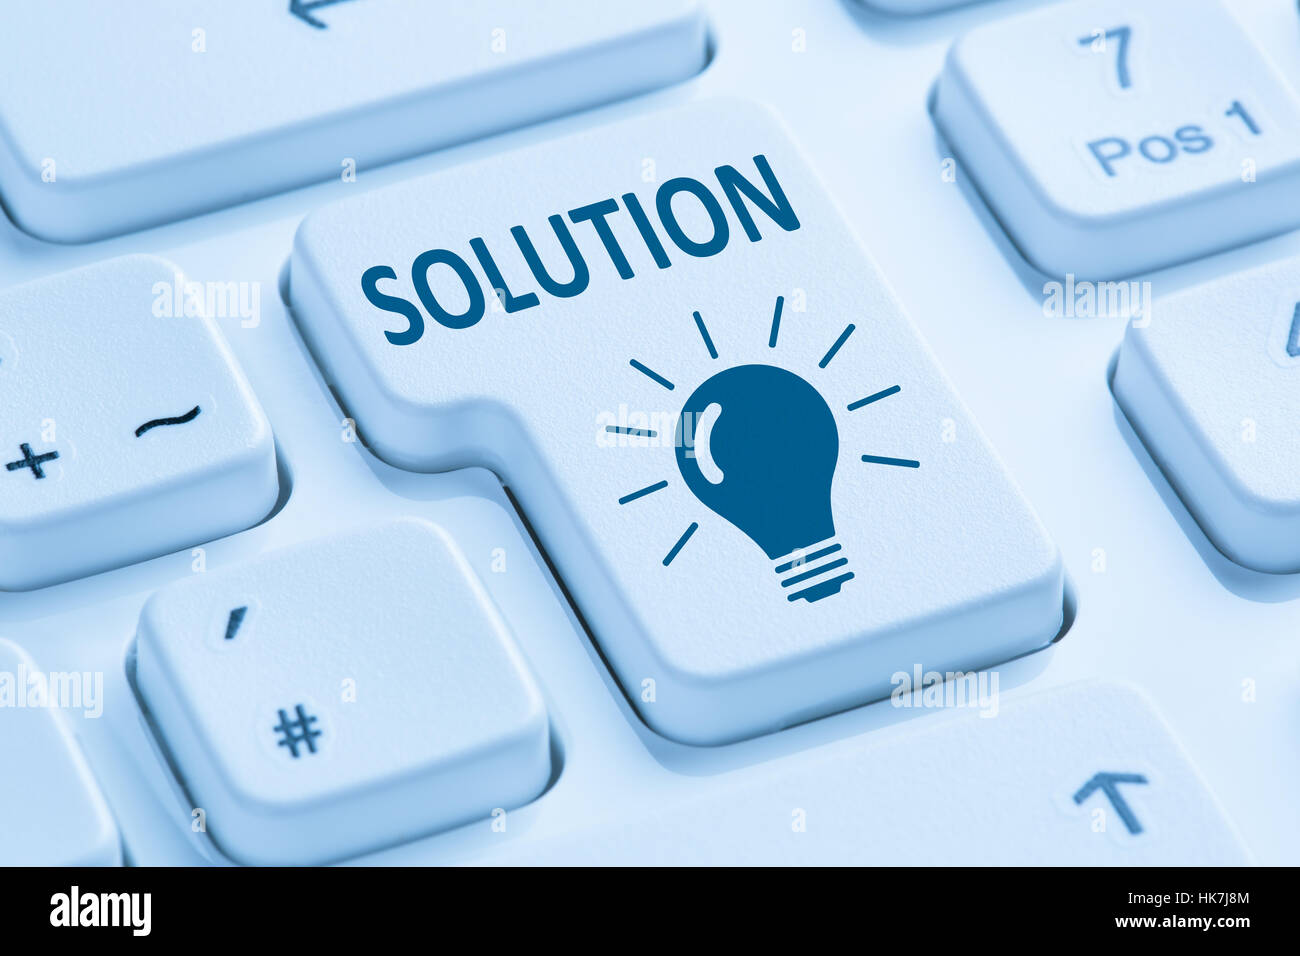 Finding solution for problem conflict button symbol internet blue computer keyboard - Stock Image